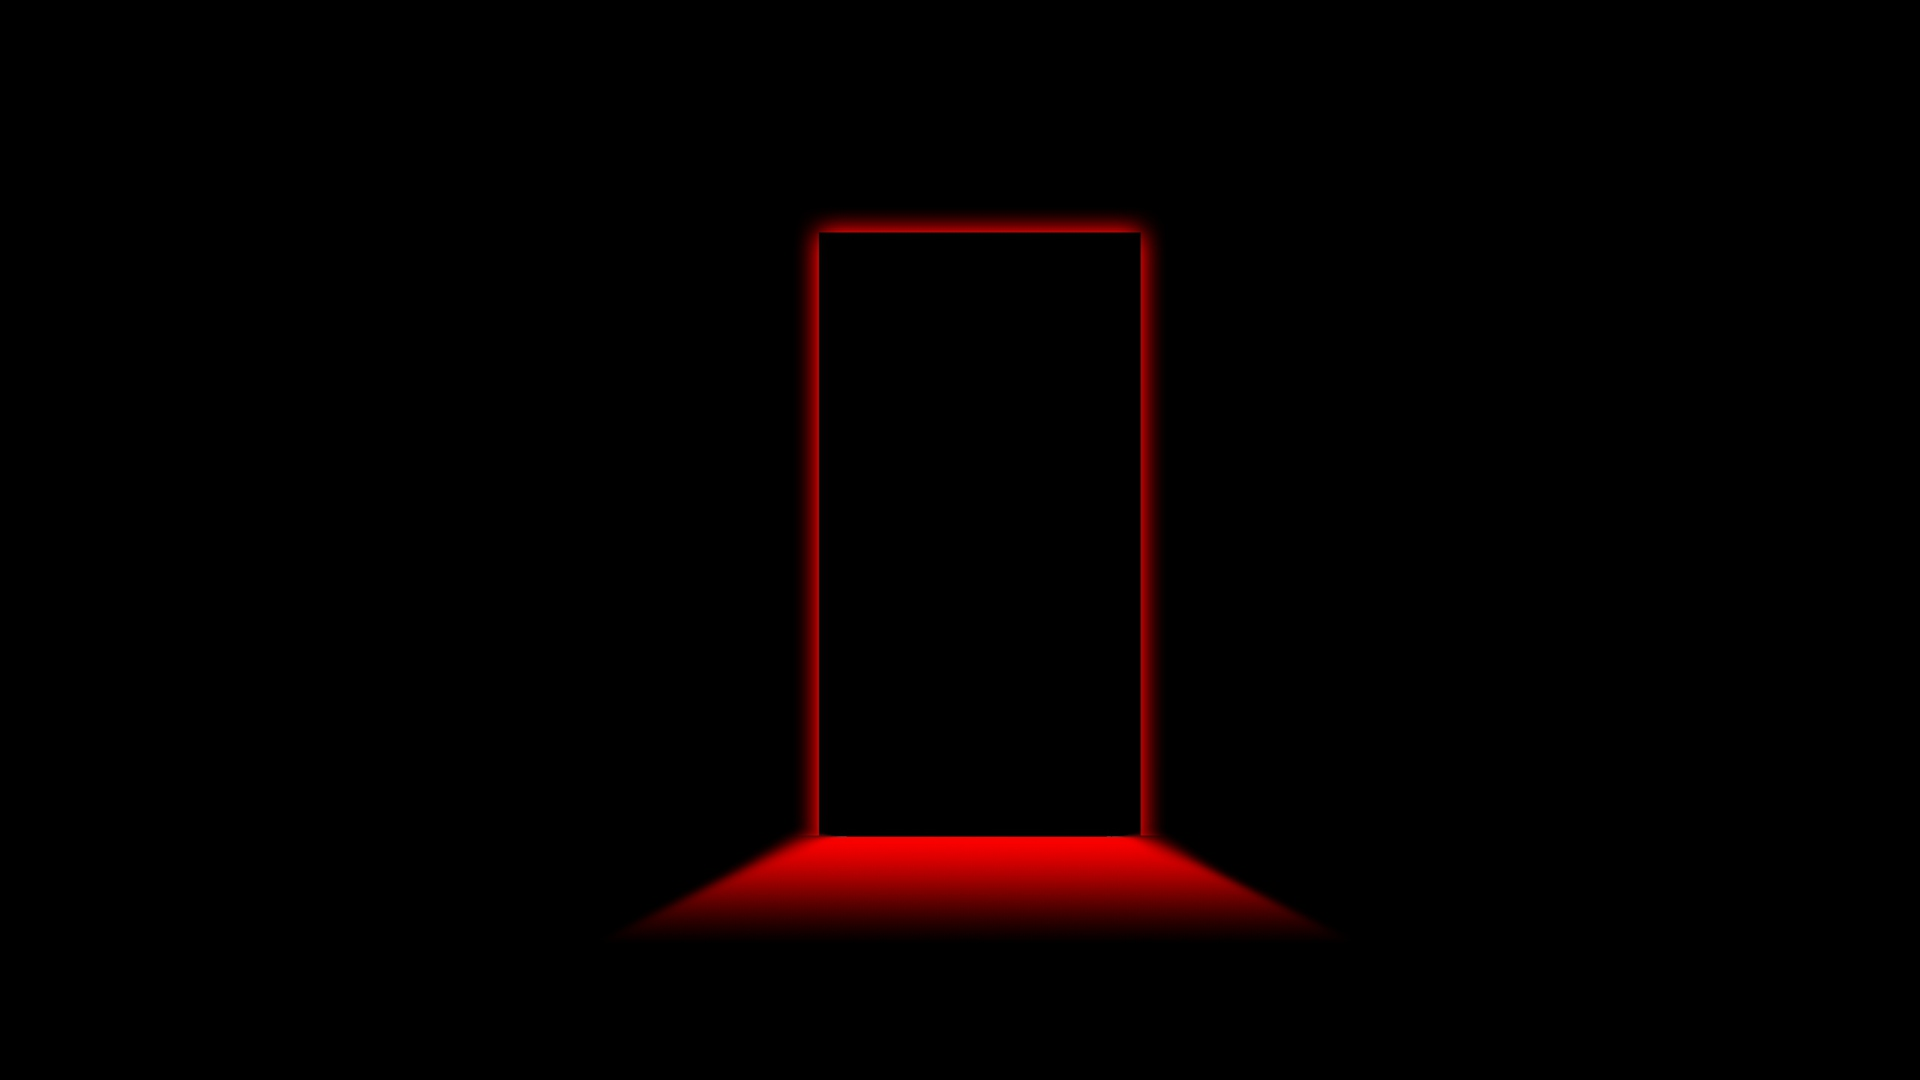 Earnings Disclaimer >> Download Wallpaper 1920x1080 door, light, shadow, black, red Full HD 1080p HD Background